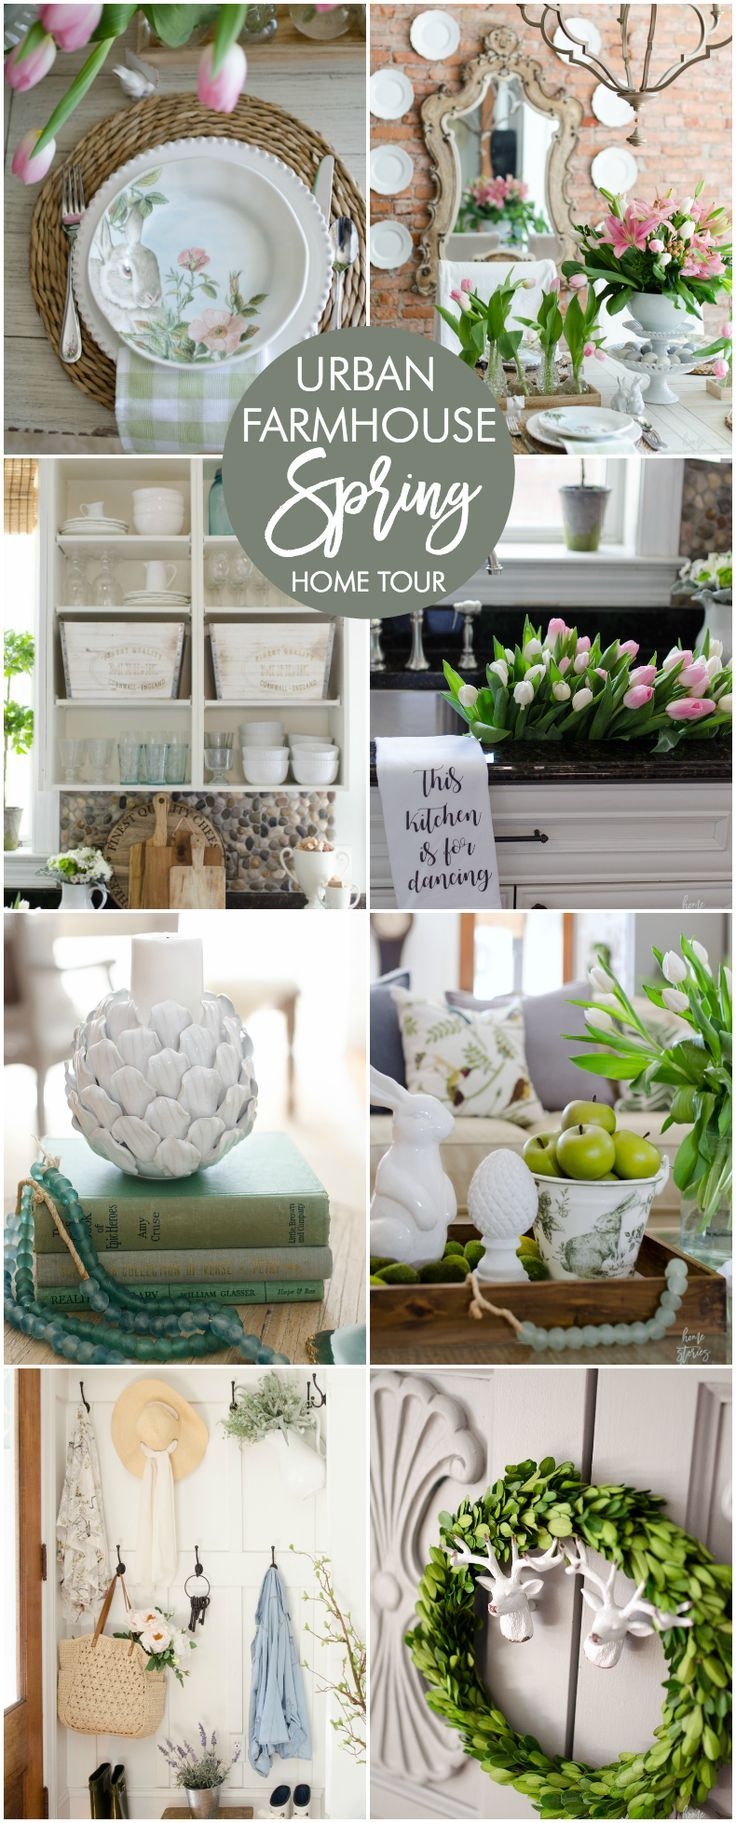 Modern Farmhouse Spring Home Decor Ideas: 350 Best Spring Decor Images On Pinterest